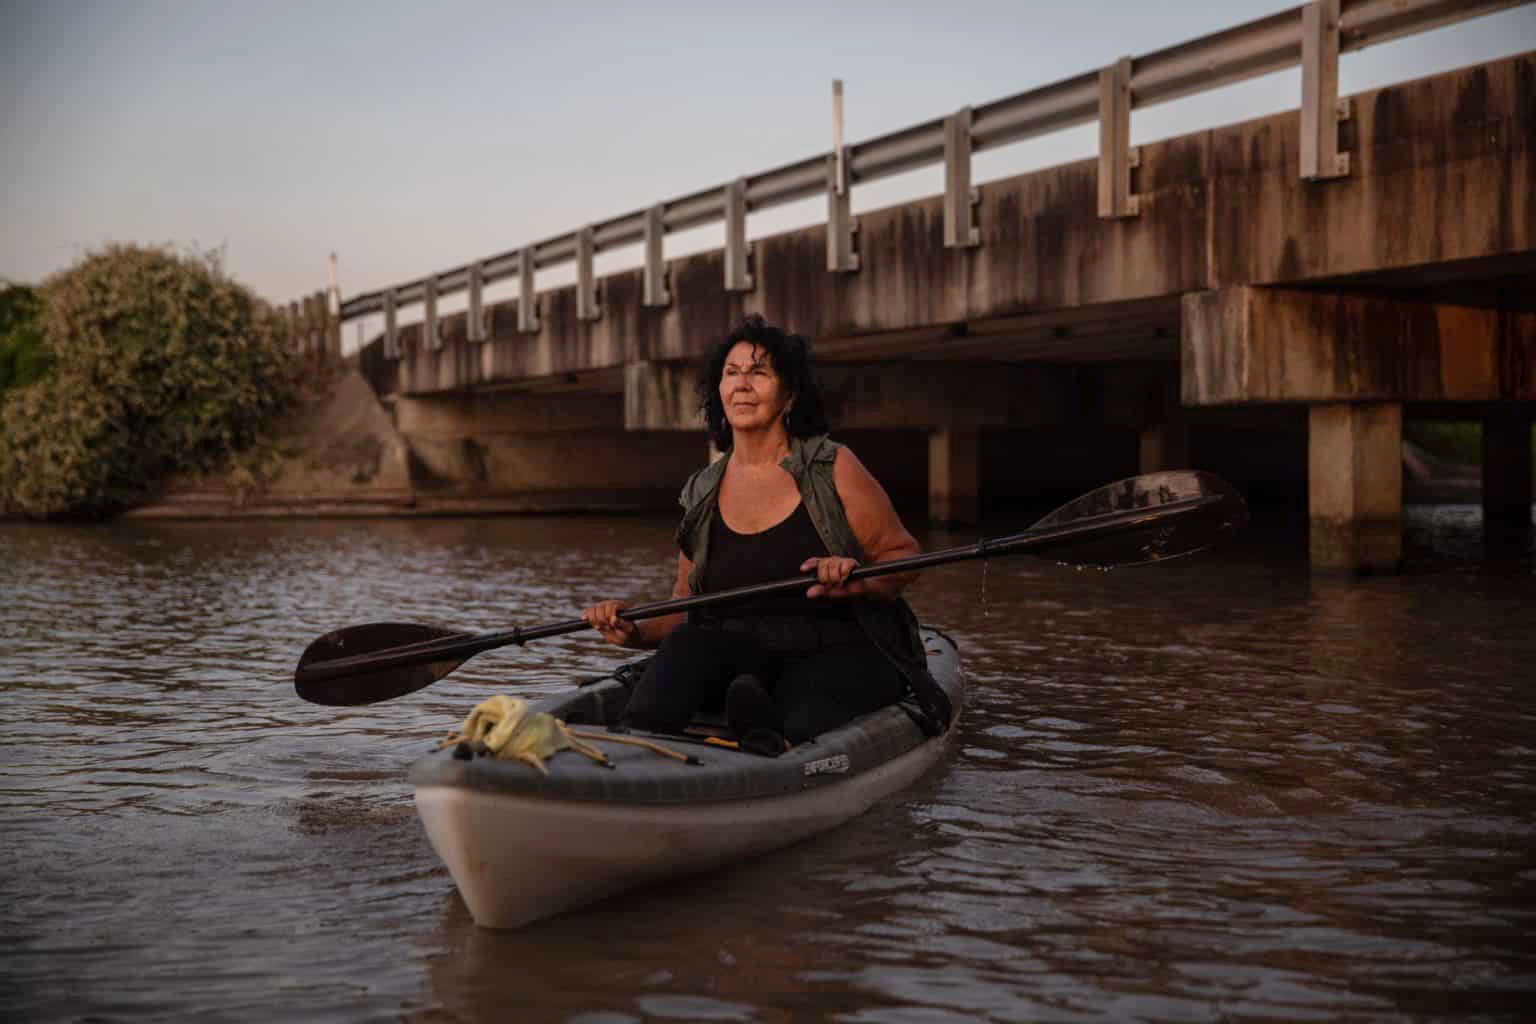 Diane Wilson investigating microplastic pollution on Cox's Creek in the Texas Gulf Coast town of Point Comfort. She led a group of local residents in a successful courtroom assault on giant Formosa Plastics. (Tamir Kalifa)